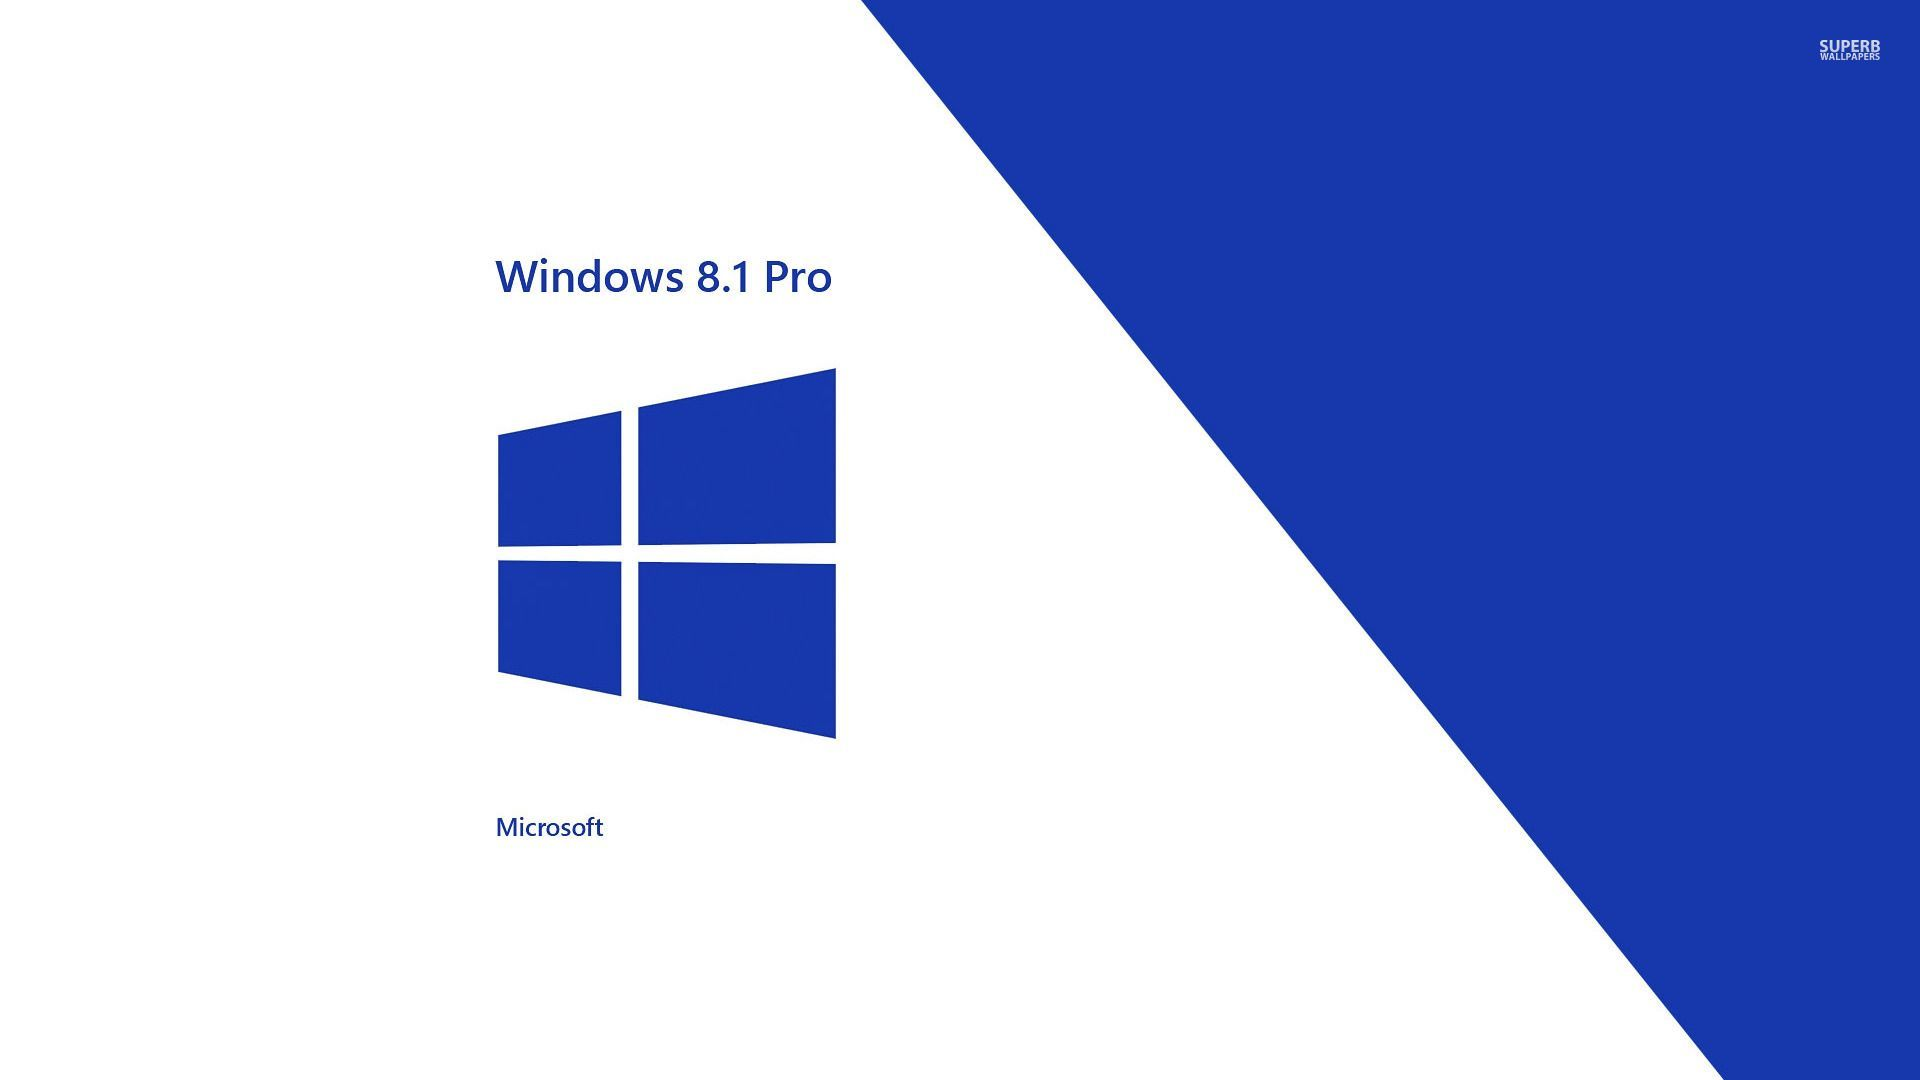 Windows Wallpapers For Free Download Windows Full Hd 4k Windows Wallpaper Laptop Wallpaper Desktop Wallpapers Desktop Wallpapers Backgrounds